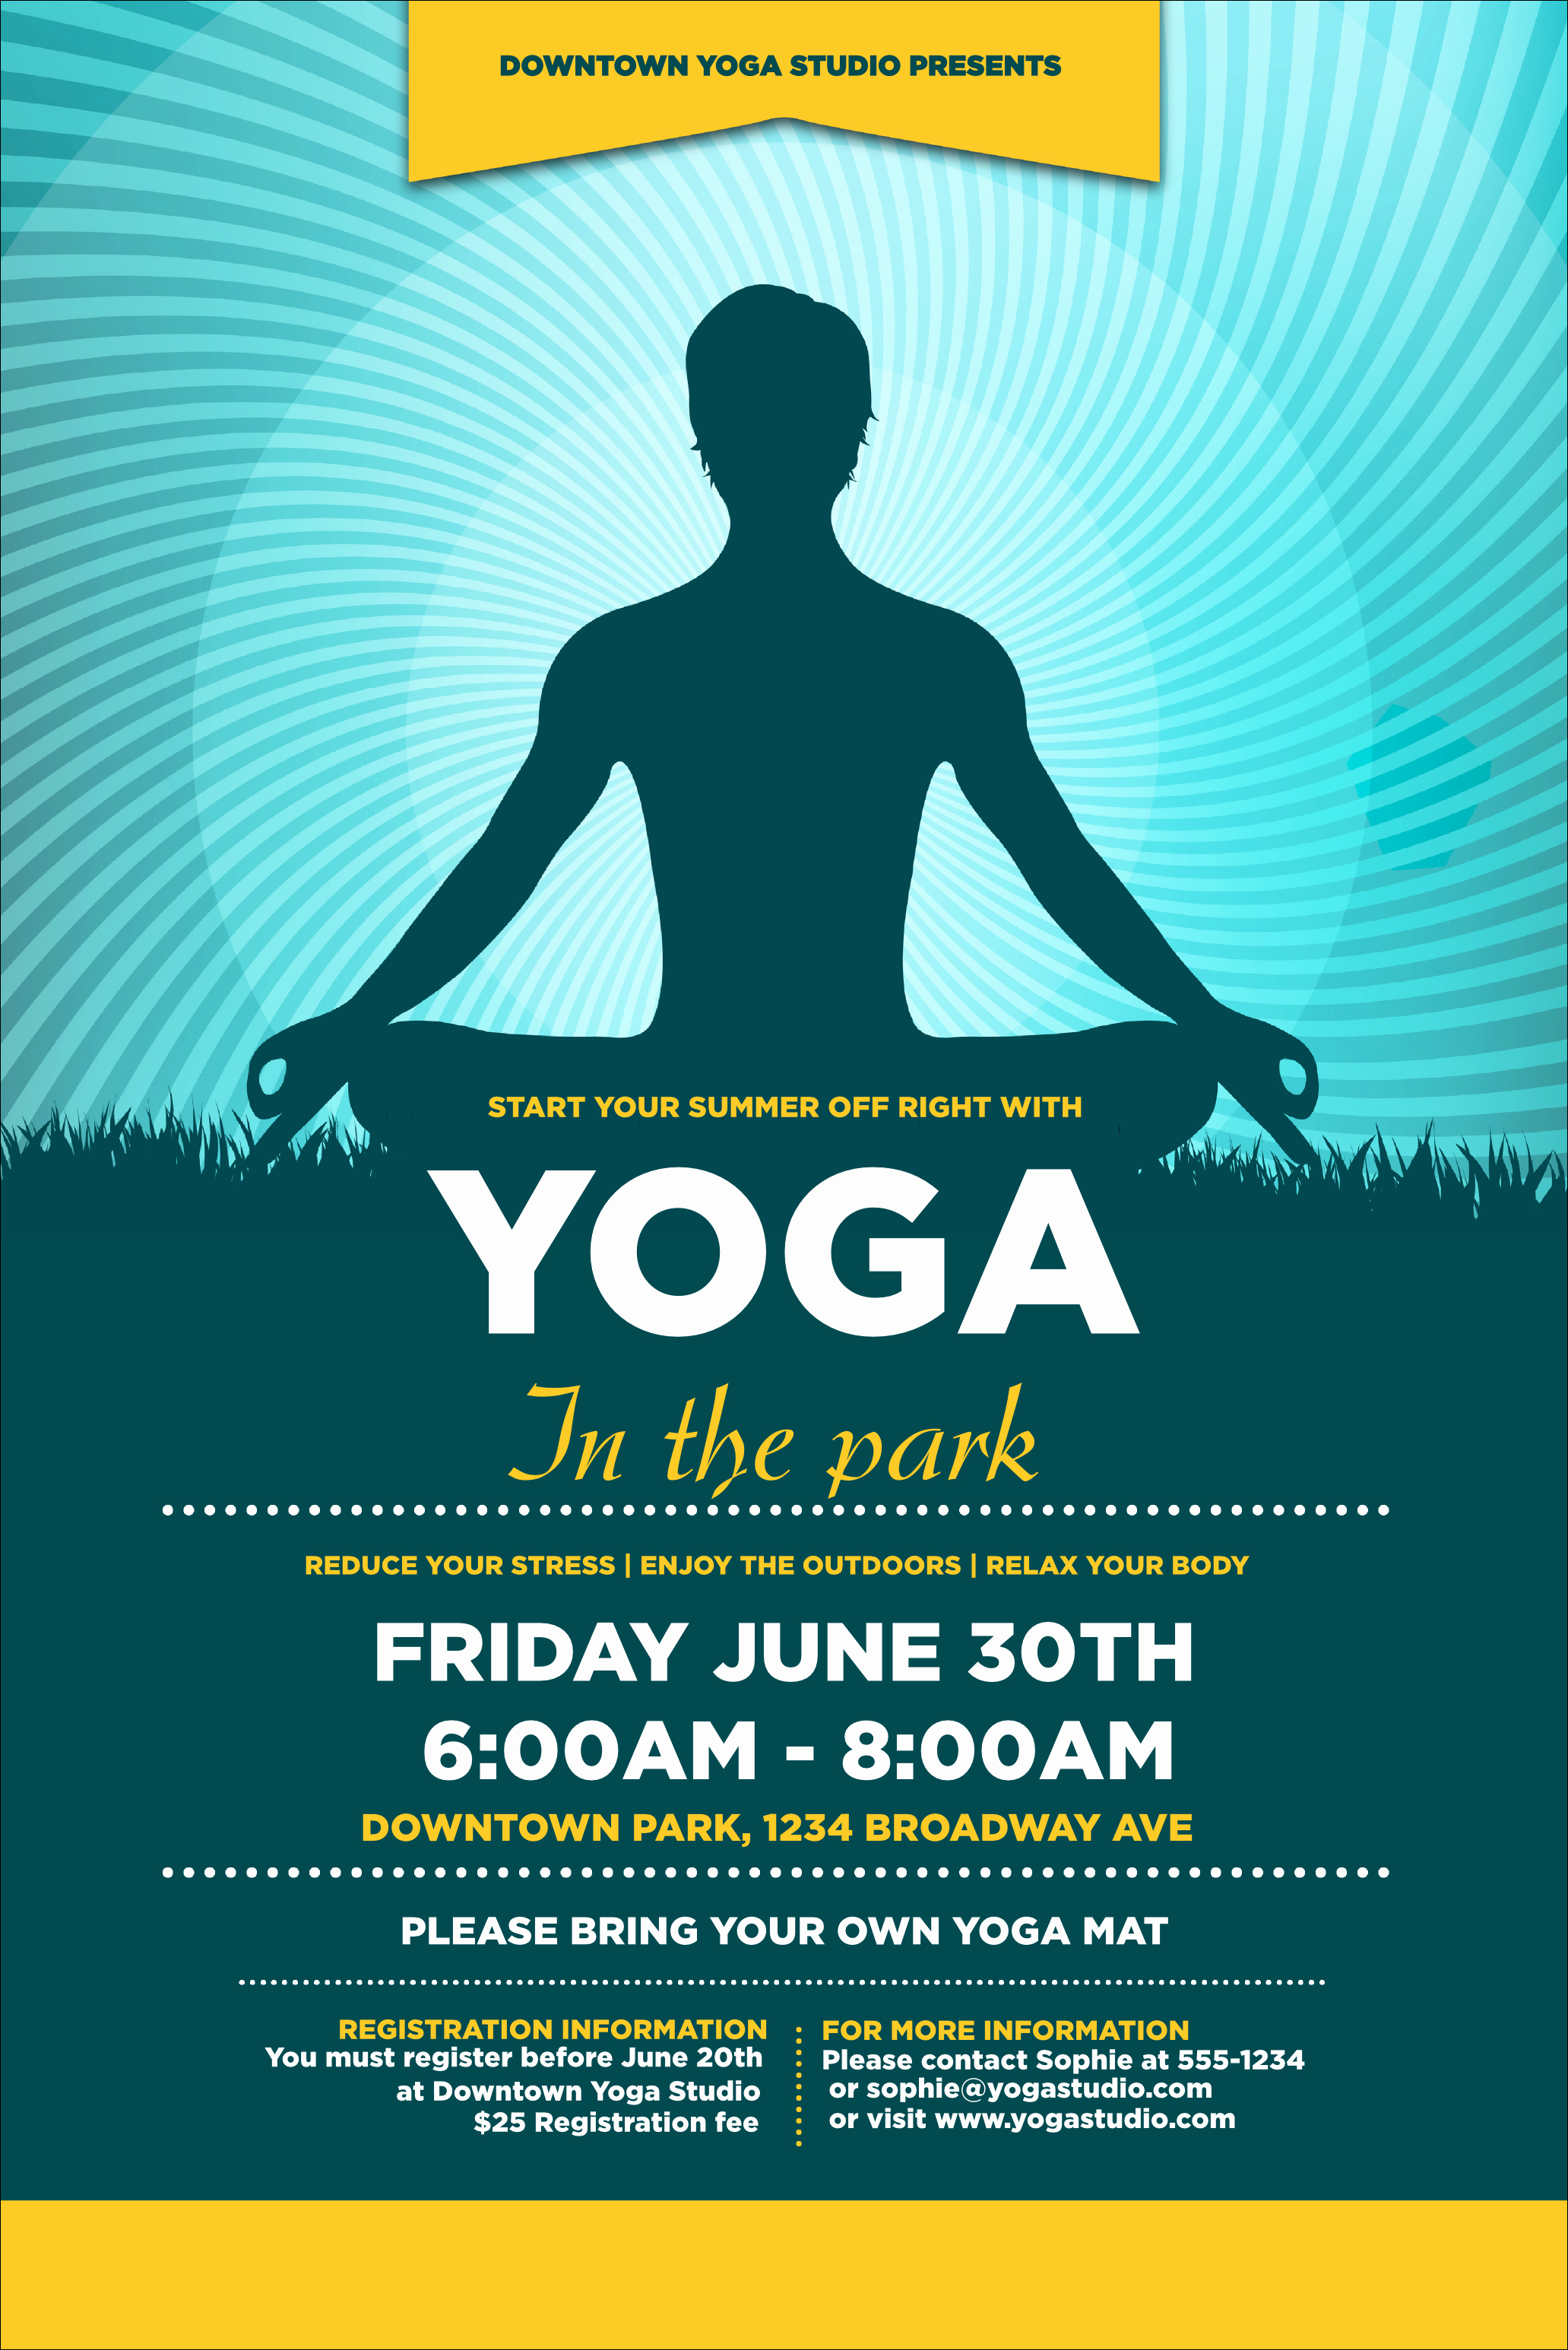 Yoga Flyer Template Free New Yoga Meditation Poster